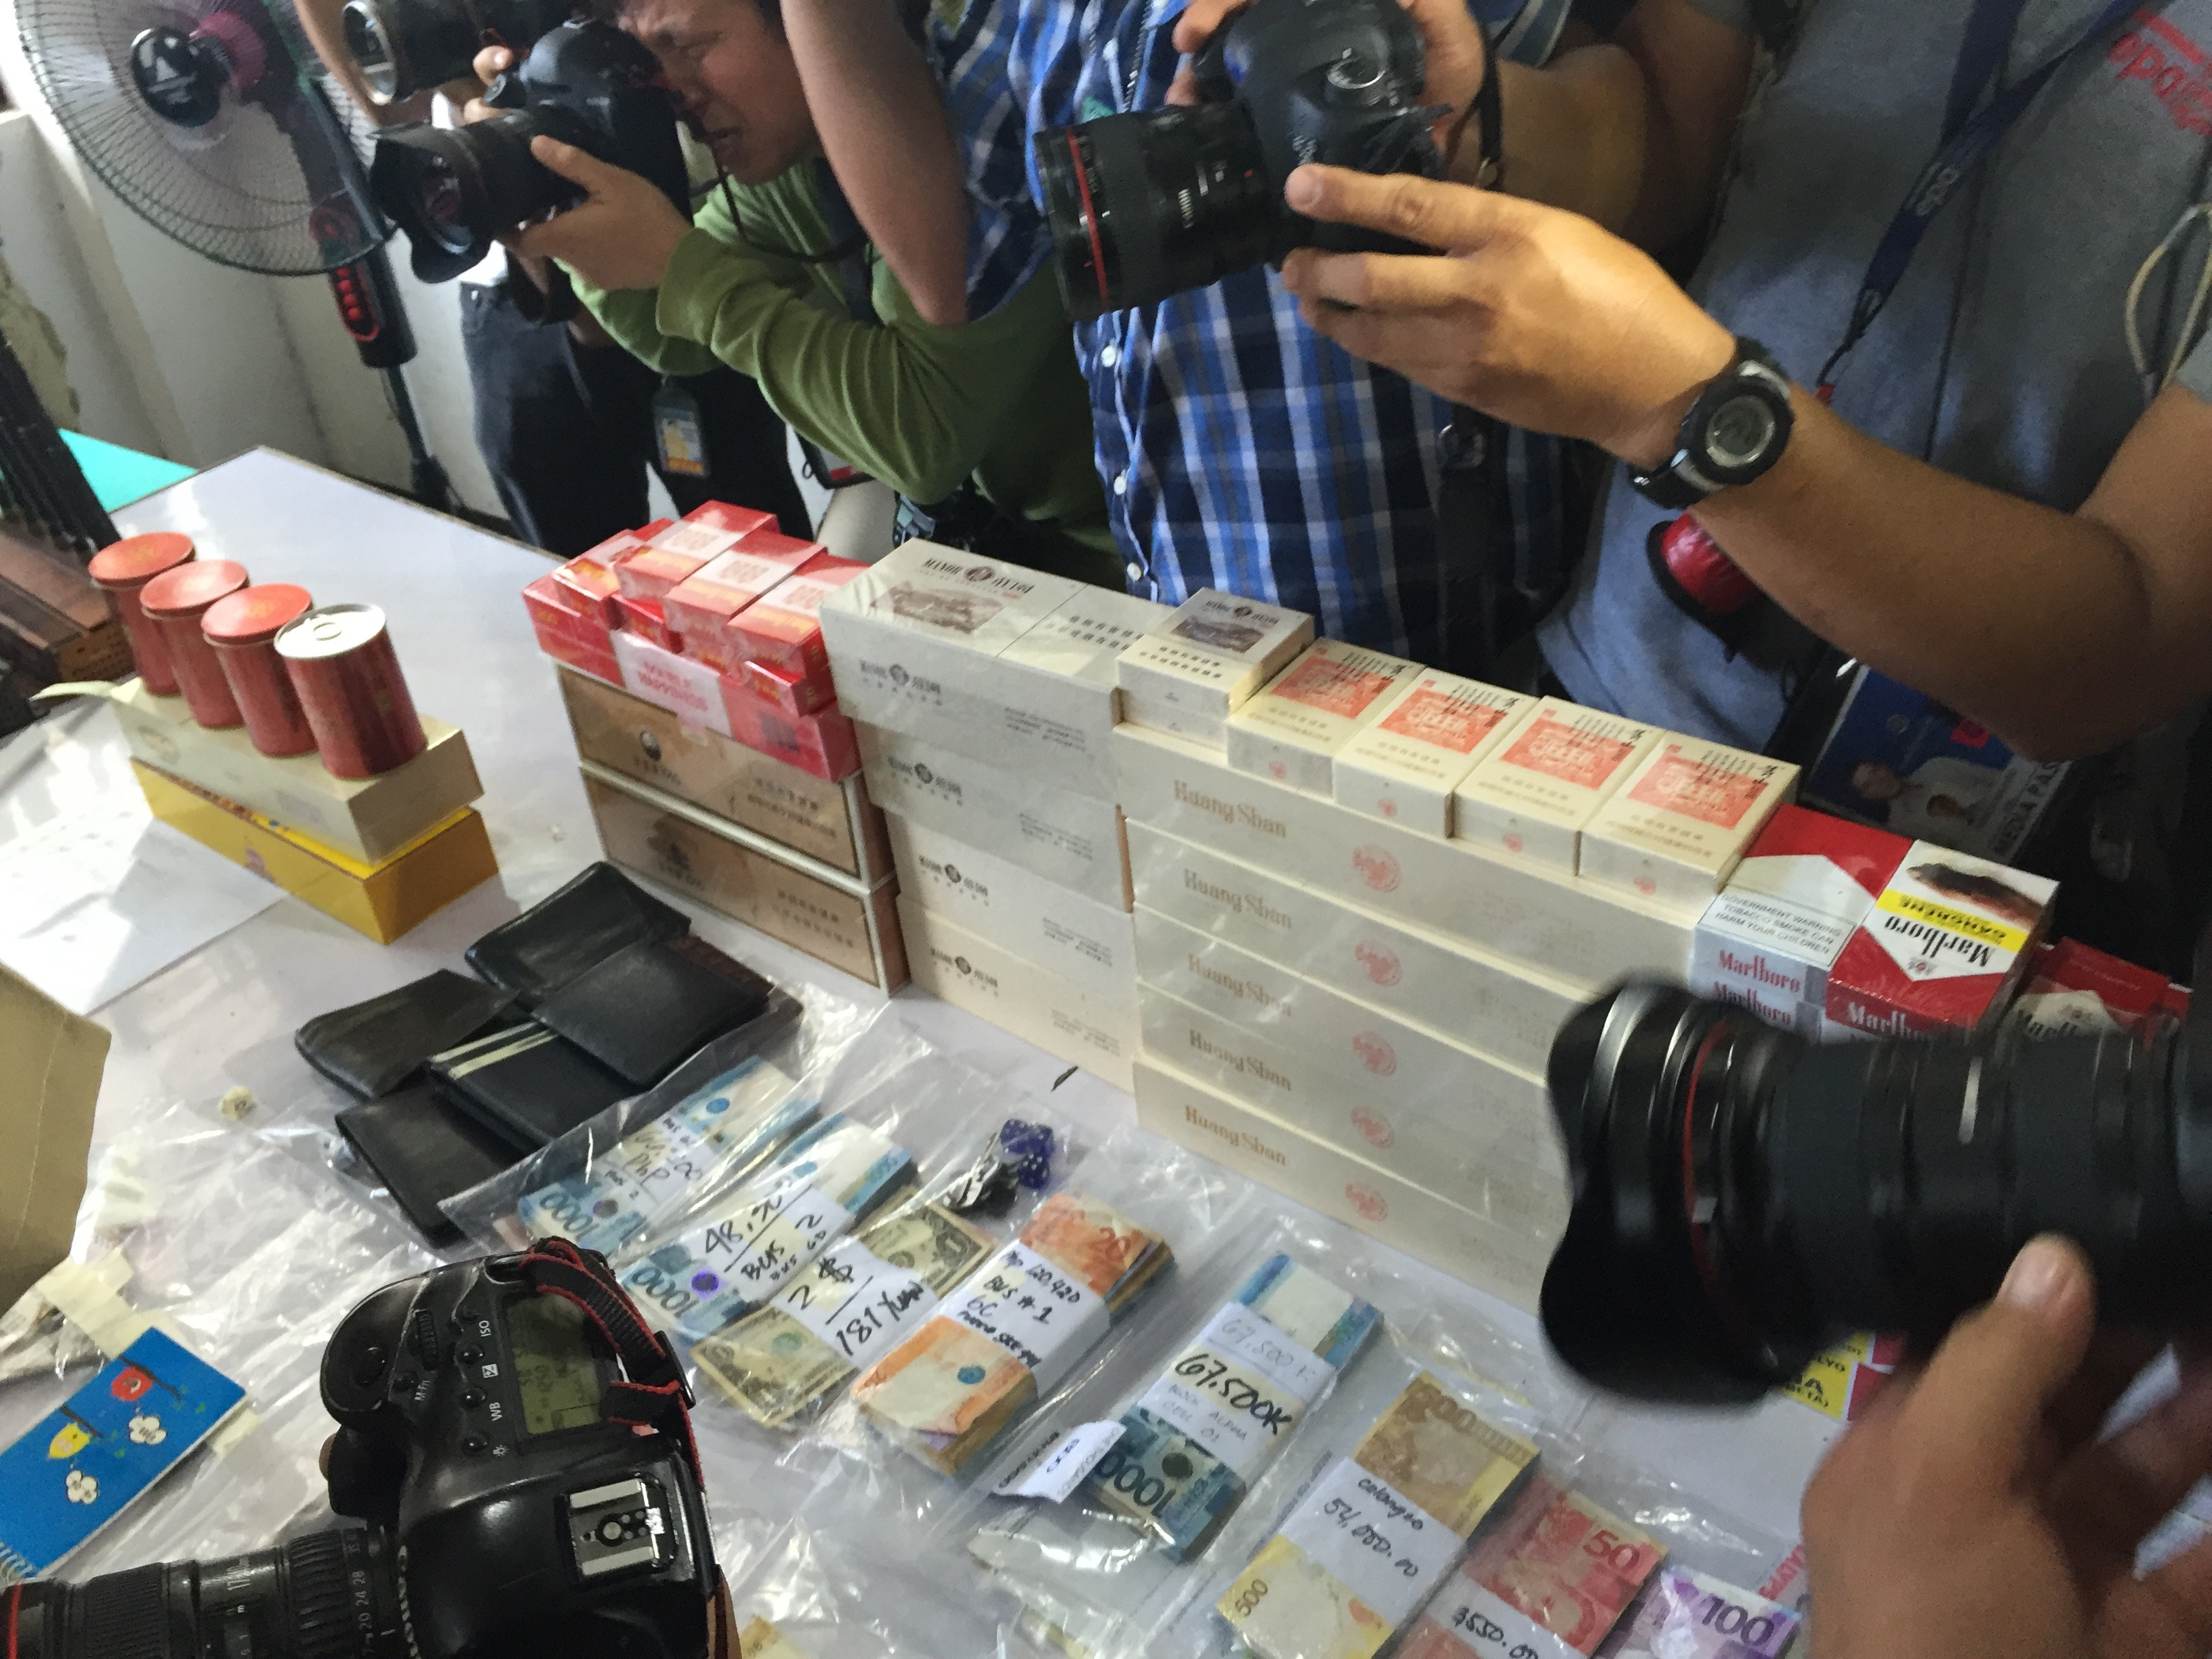 CONFISCATED. Contraband items including cigarettes, crash, and wallets with cash are seized from inmates in the New Bilibid Compound. Photo by Bea Cupin/Rappler